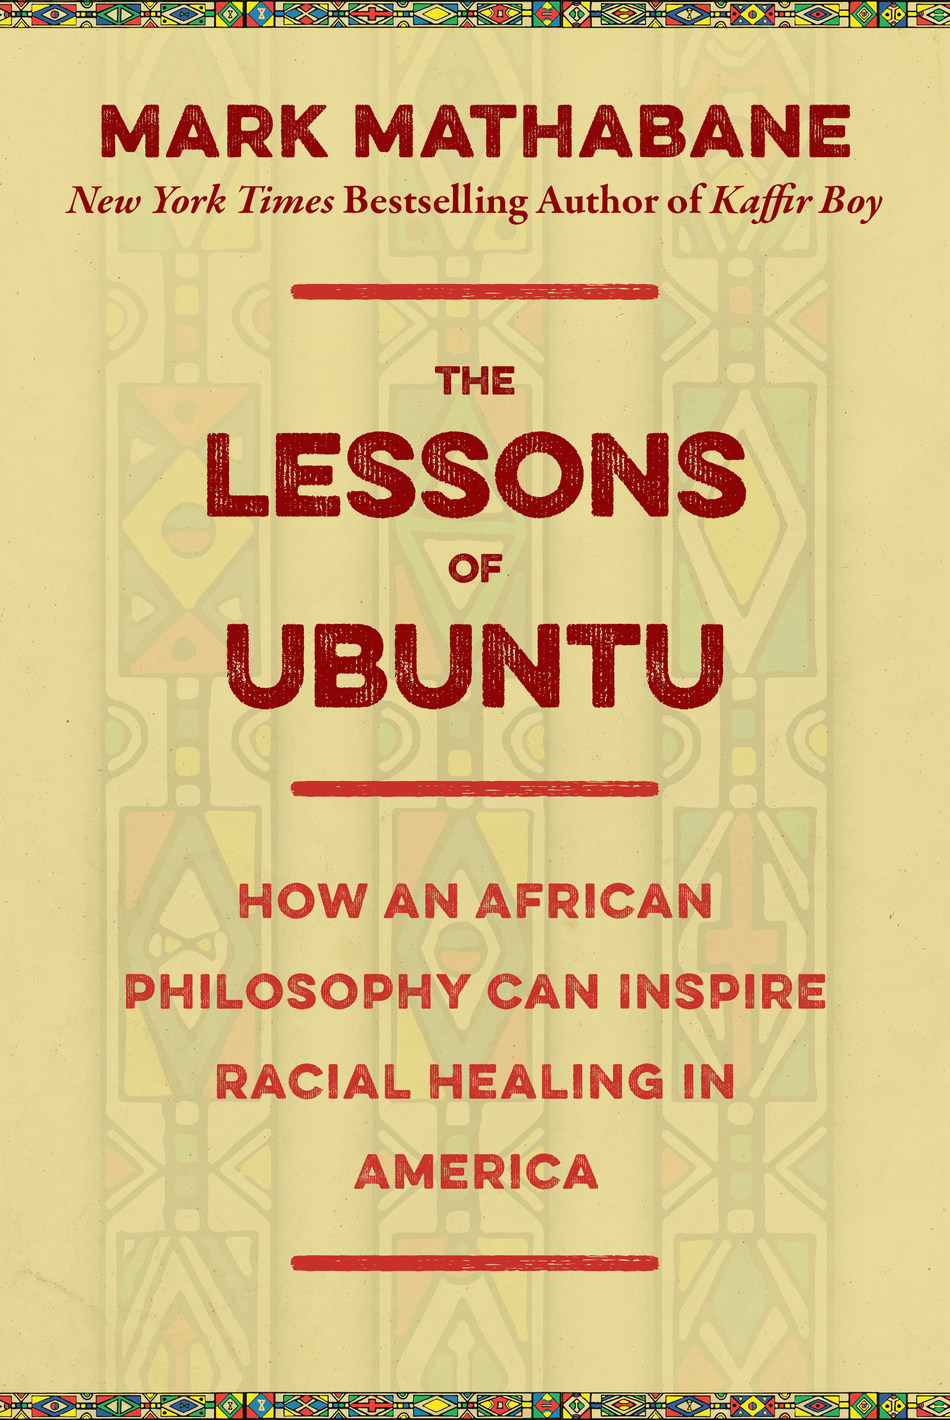 The Lessons of Ubuntu: How an African Philosophy Can Inspire Racial Healing in America by Mark Mathabane